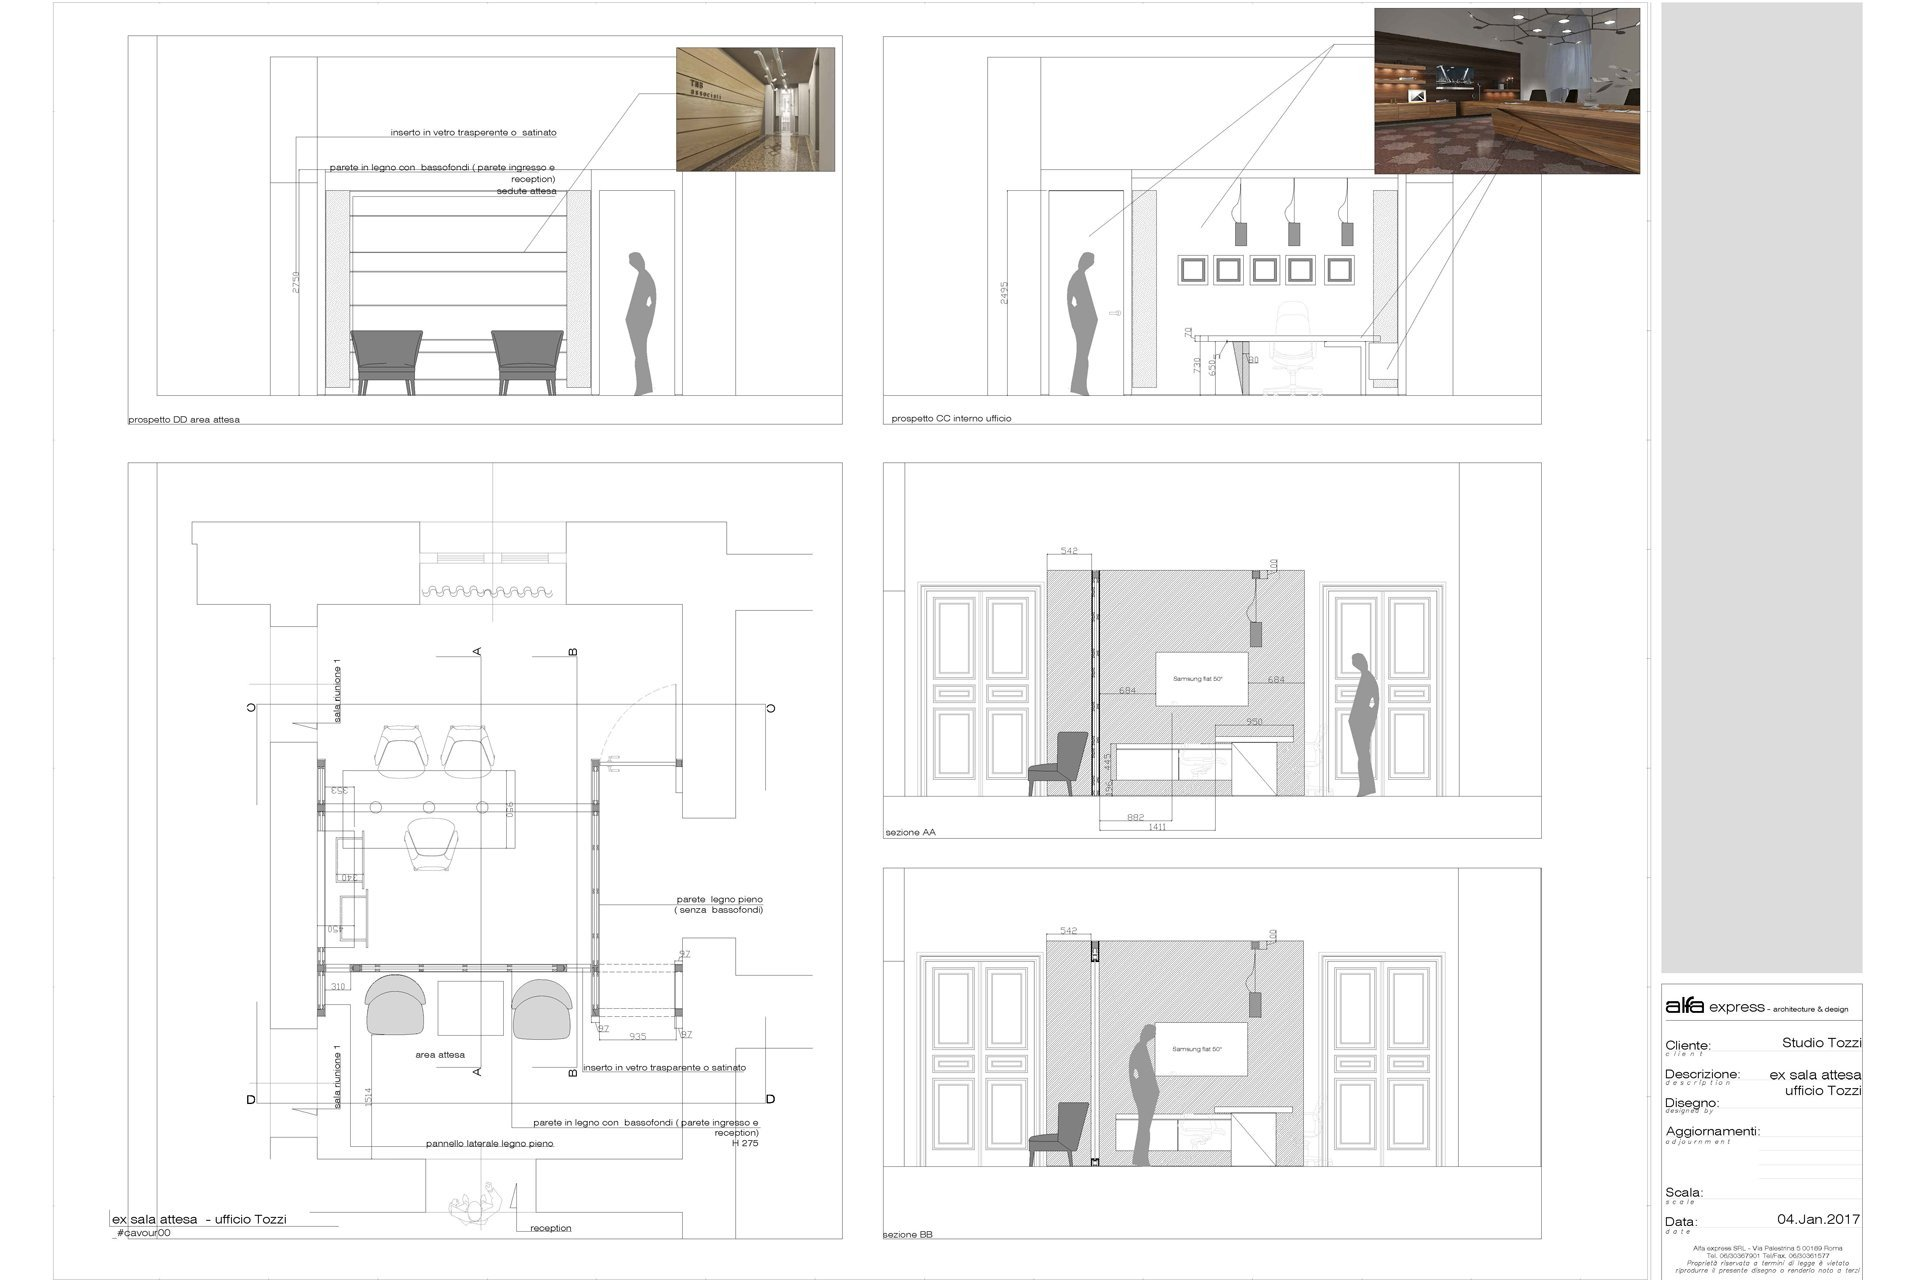 Rome private office - elevations